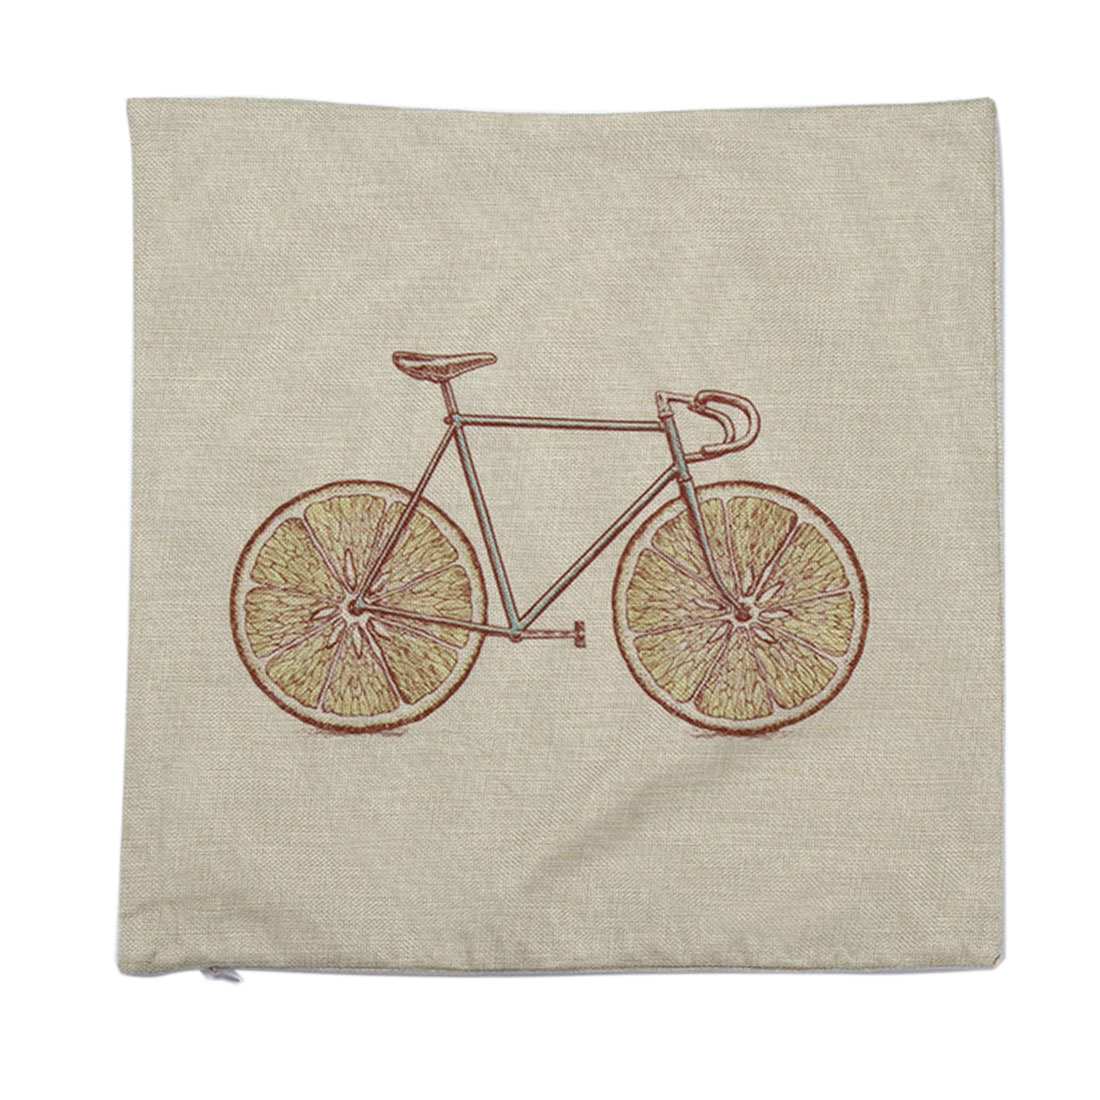 Piccocasa Home Sofa Linen Grapefruit Bike Pattern Cushion Cover Pillow Case